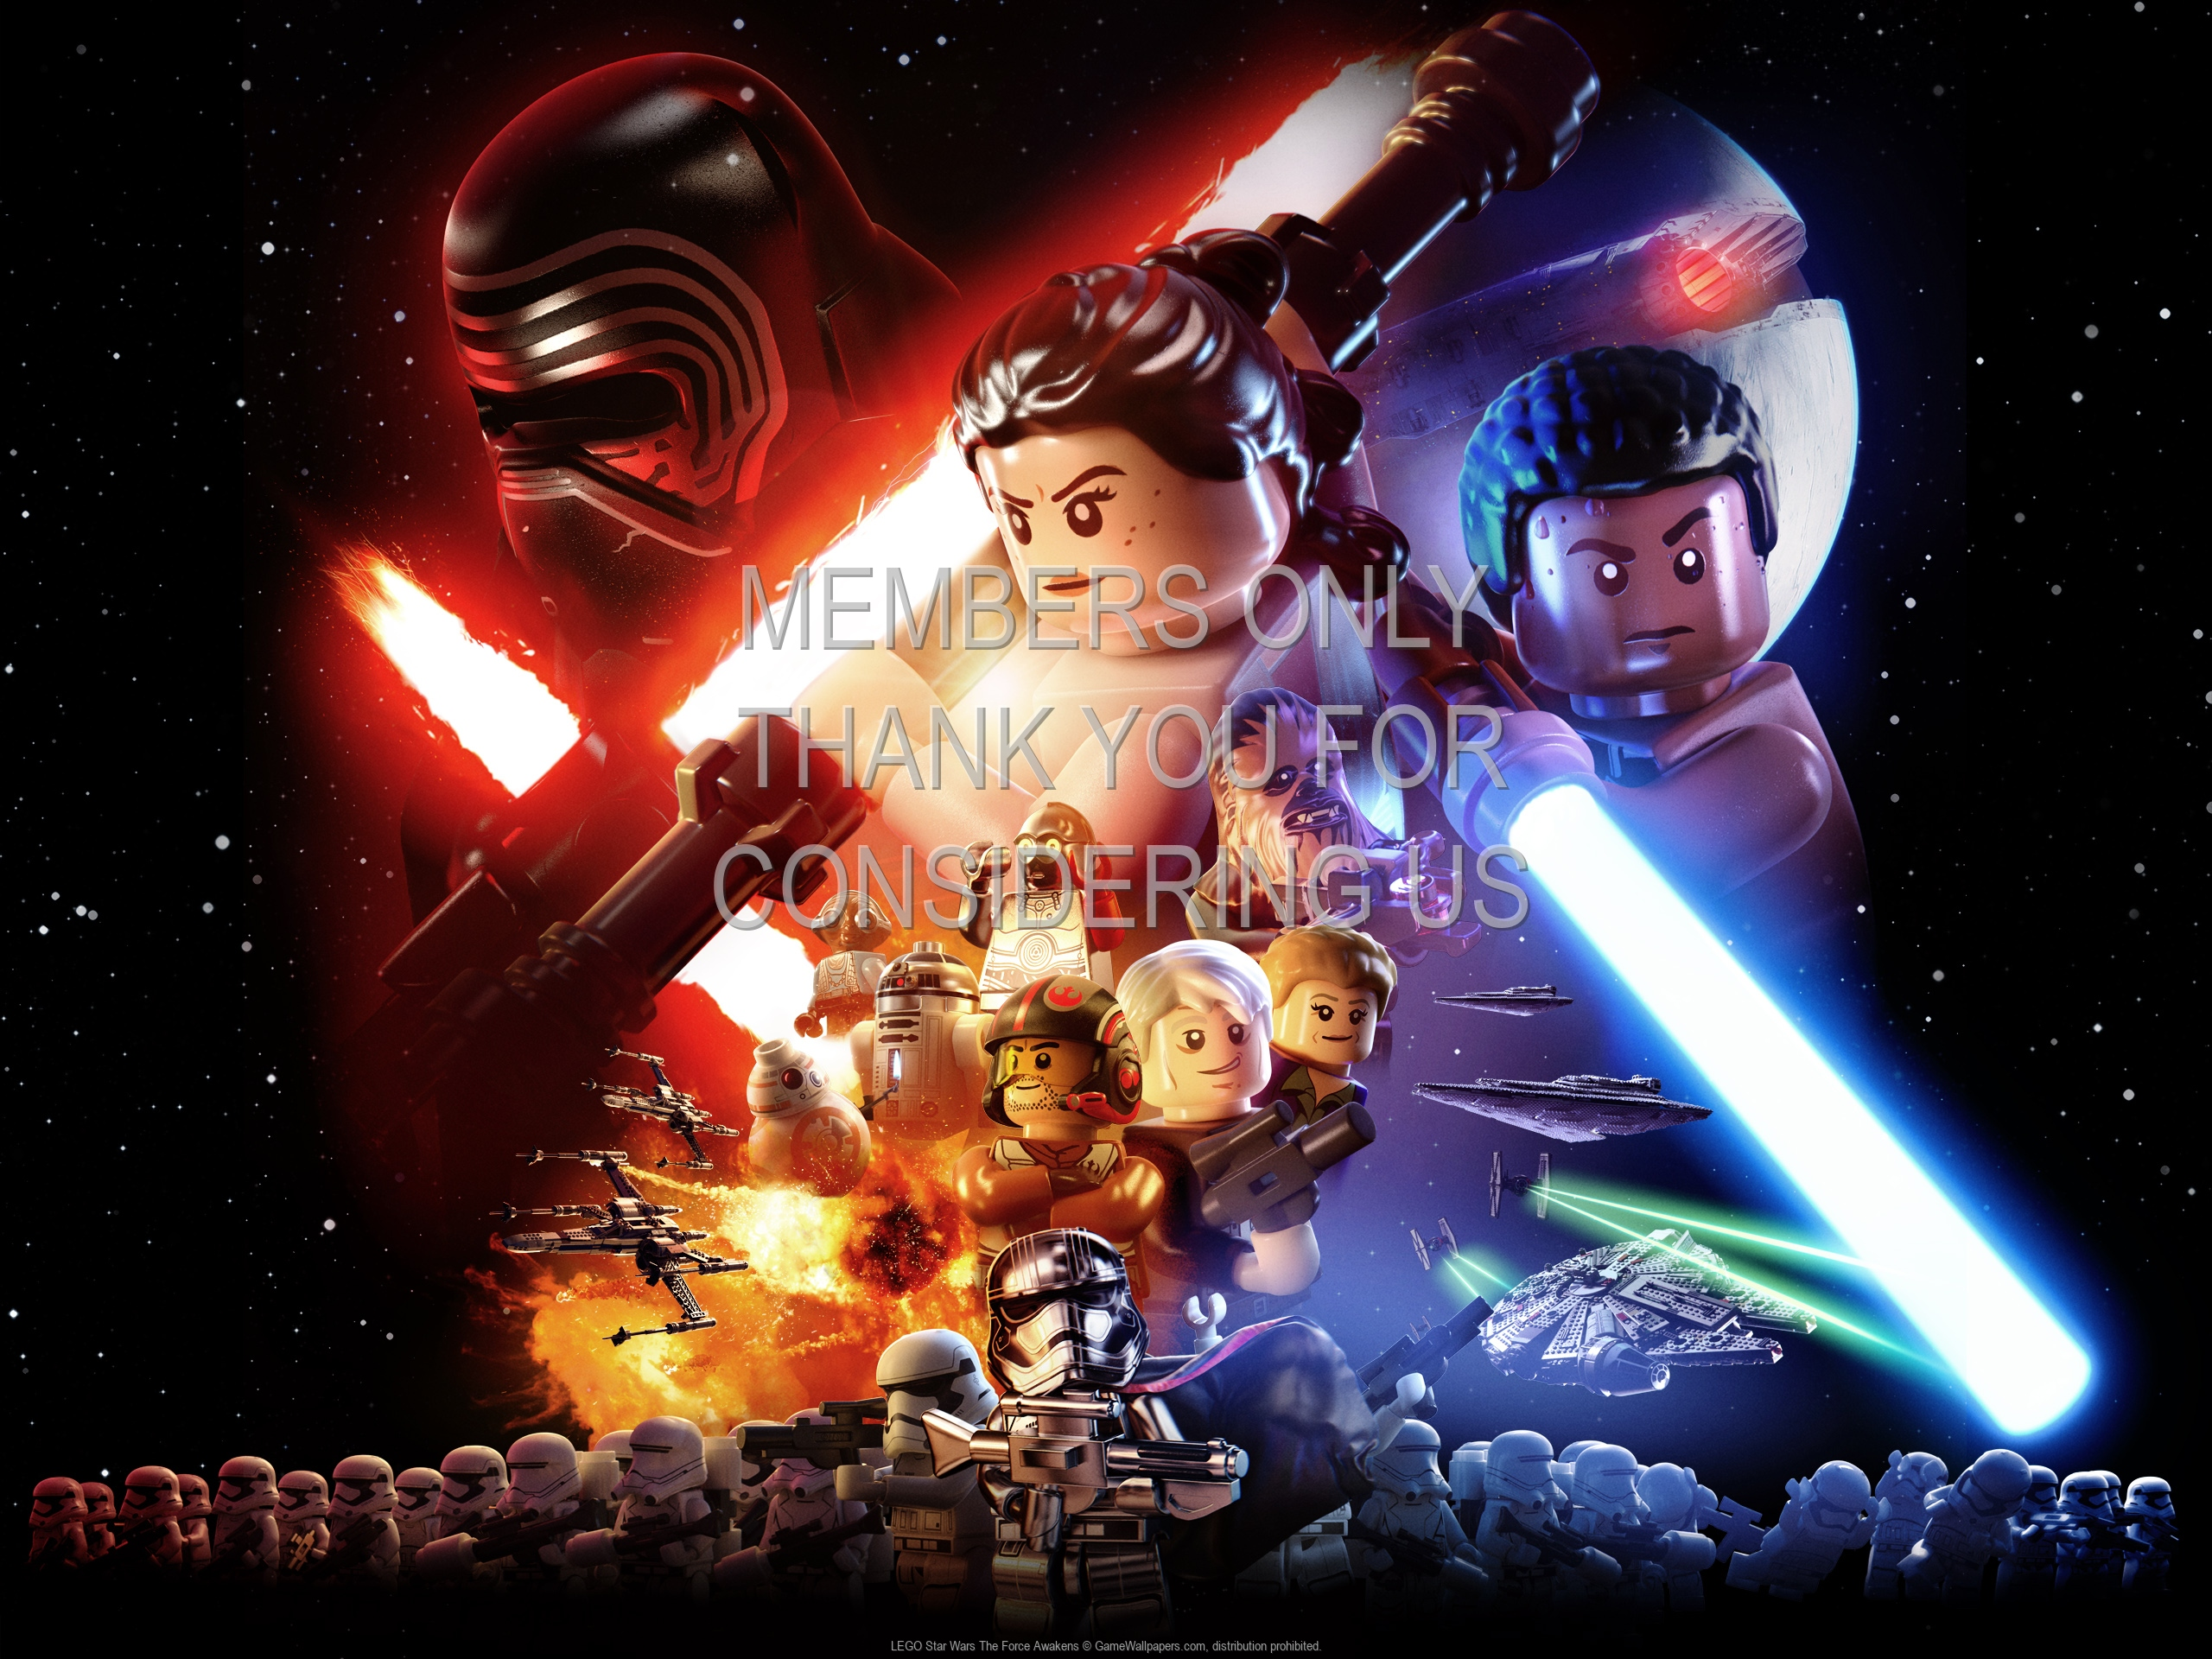 Lego Star Wars The Force Awakens Wallpaper 01 1920x1080